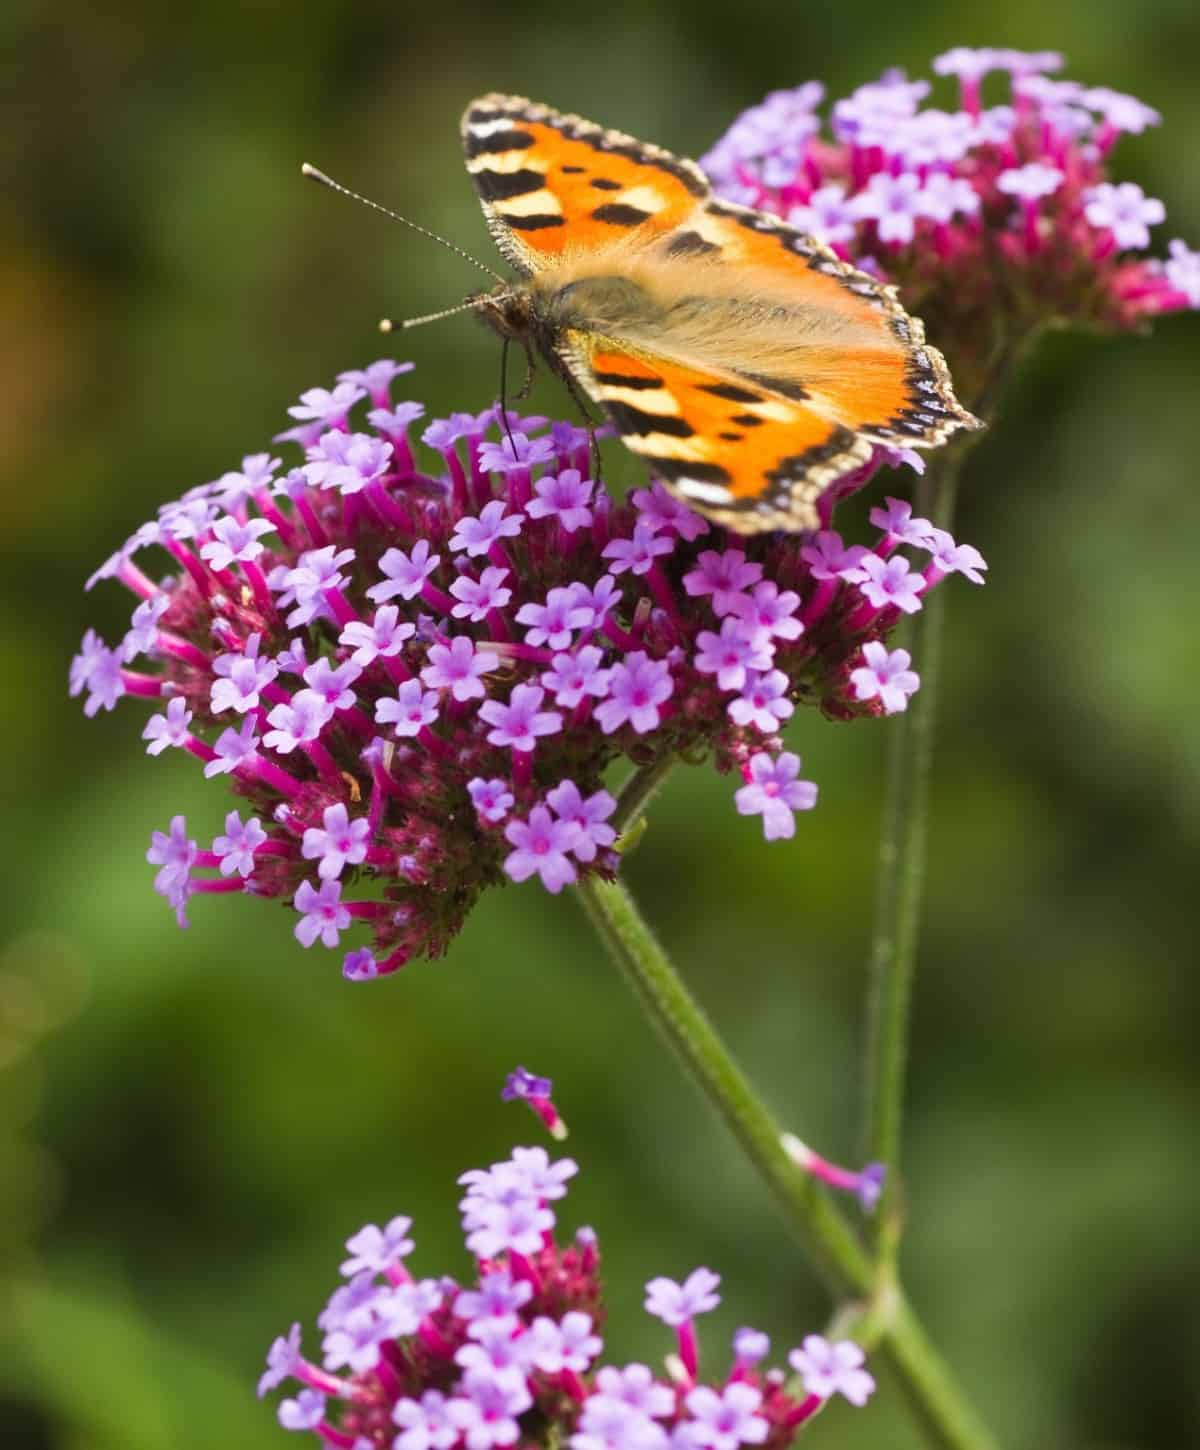 verbena comes in many different color varieties